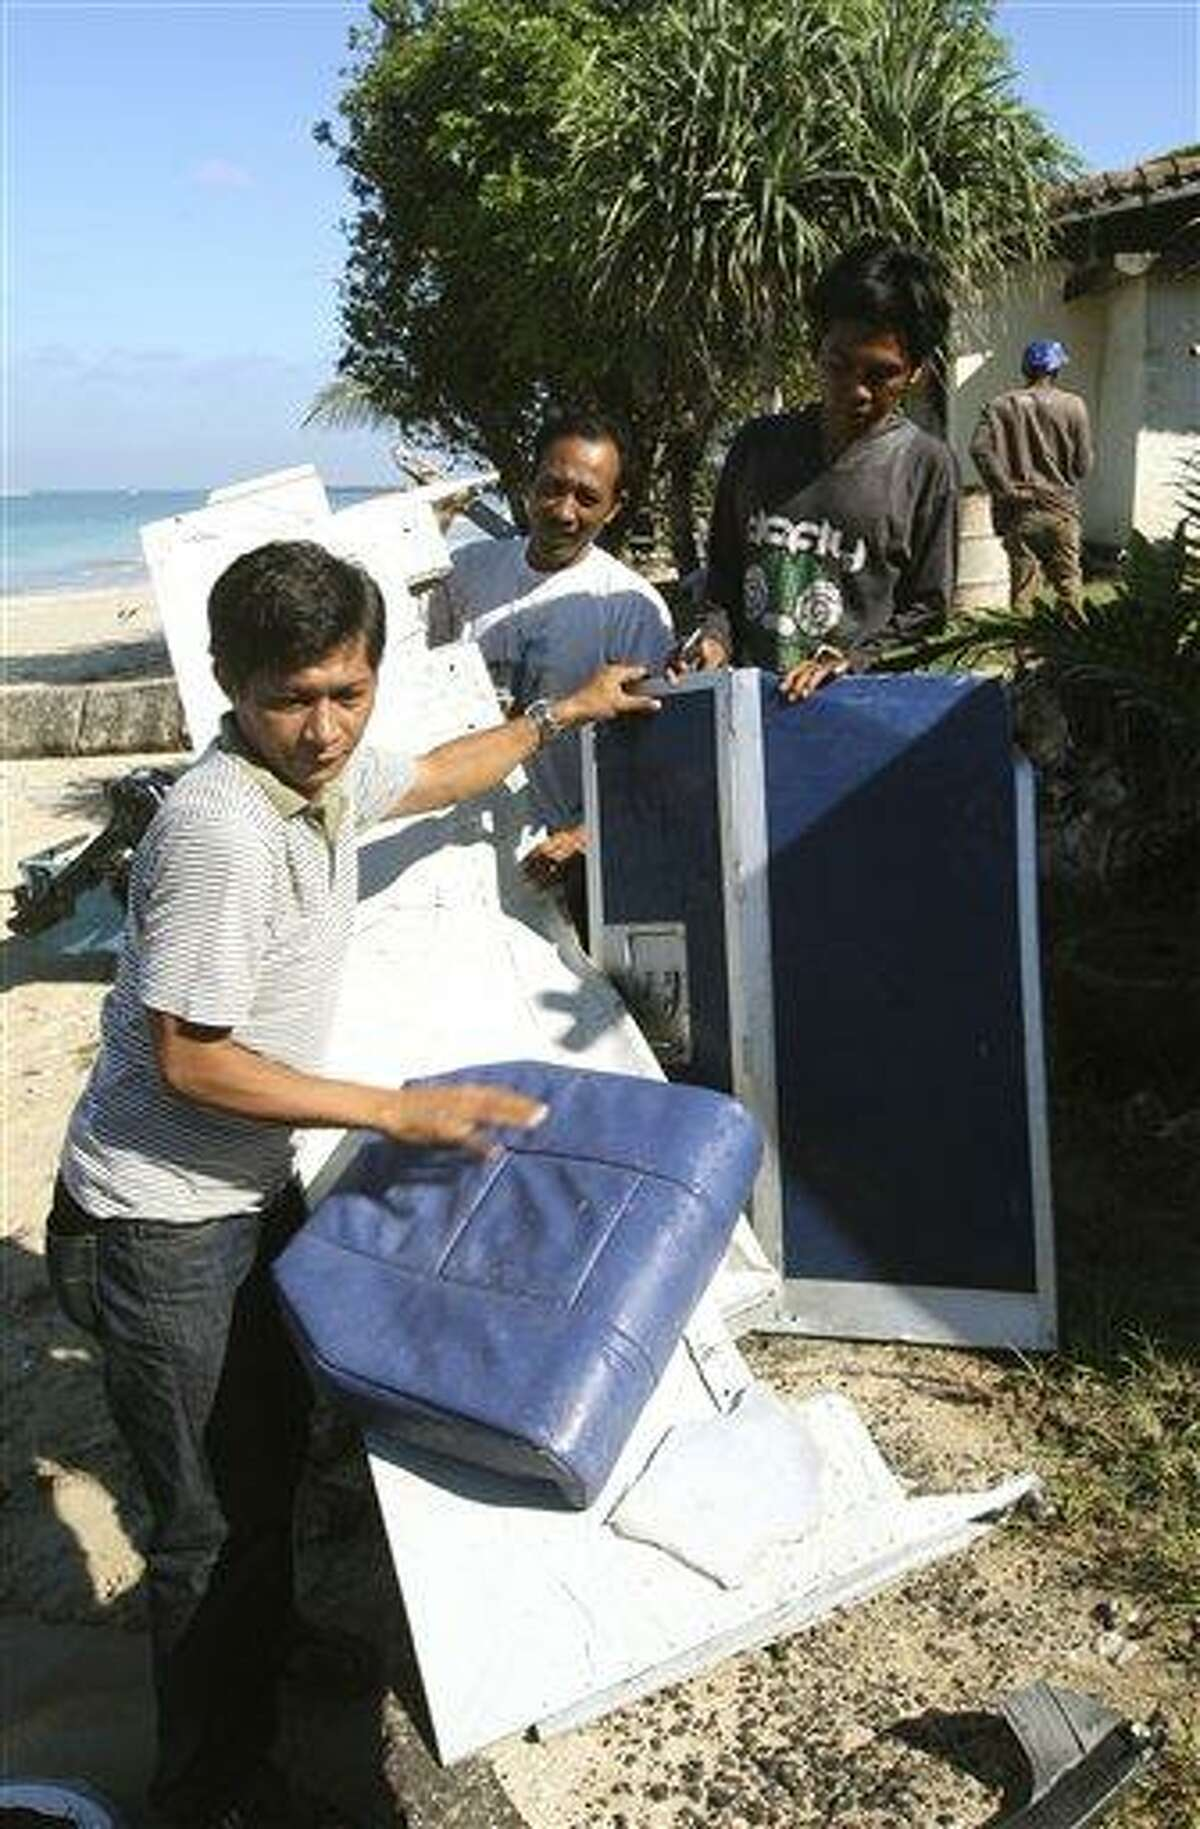 Indonesian men collect pieces of a Lion Air jet a day after the aircraft crashed into the ocean at Jimbaran beach, in Bali, Indonesia on Sunday, April 14, 2013. All 108 passengers and crew survived after the new Lion Air jet crashed into the ocean and snapped into two while attempting to land Saturday on the Indonesian resort island of Bali, injuring up to 45 people. (AP Photo/Firdia Lisnawati)